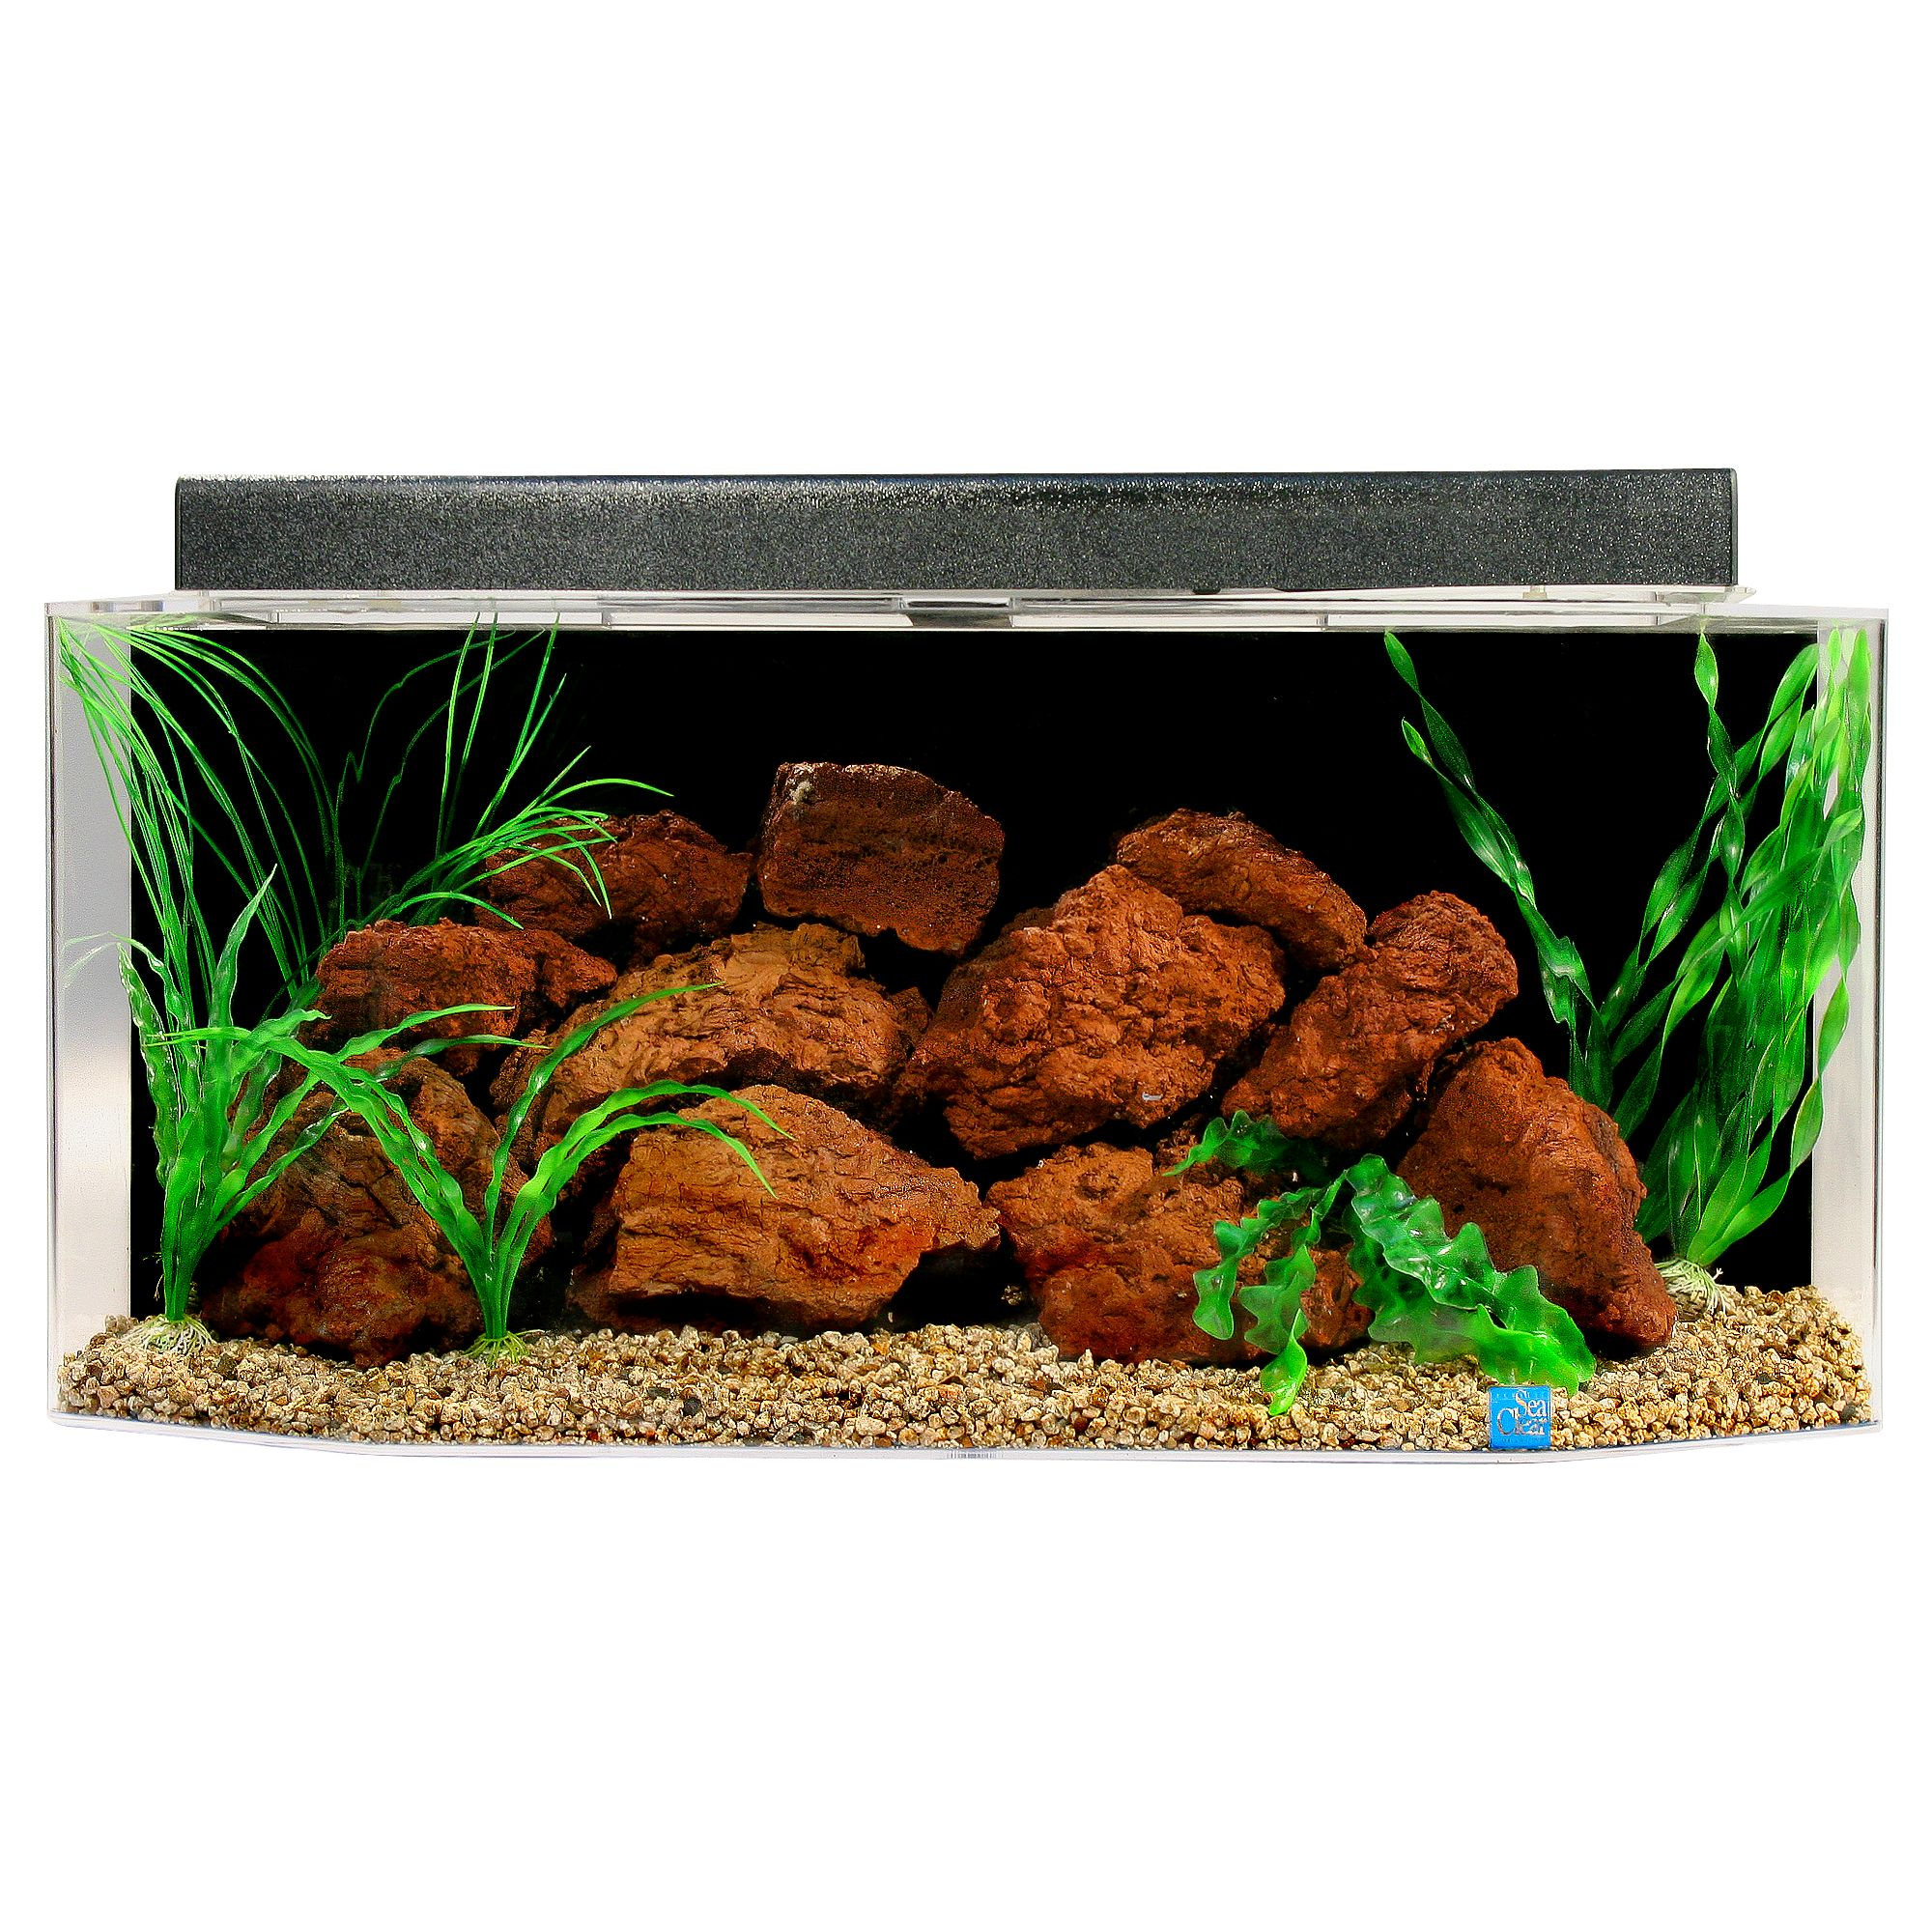 SeaClear 26 Gallon Flat Back Hexagon Aquarium size: 26 Gal, Black 5089636